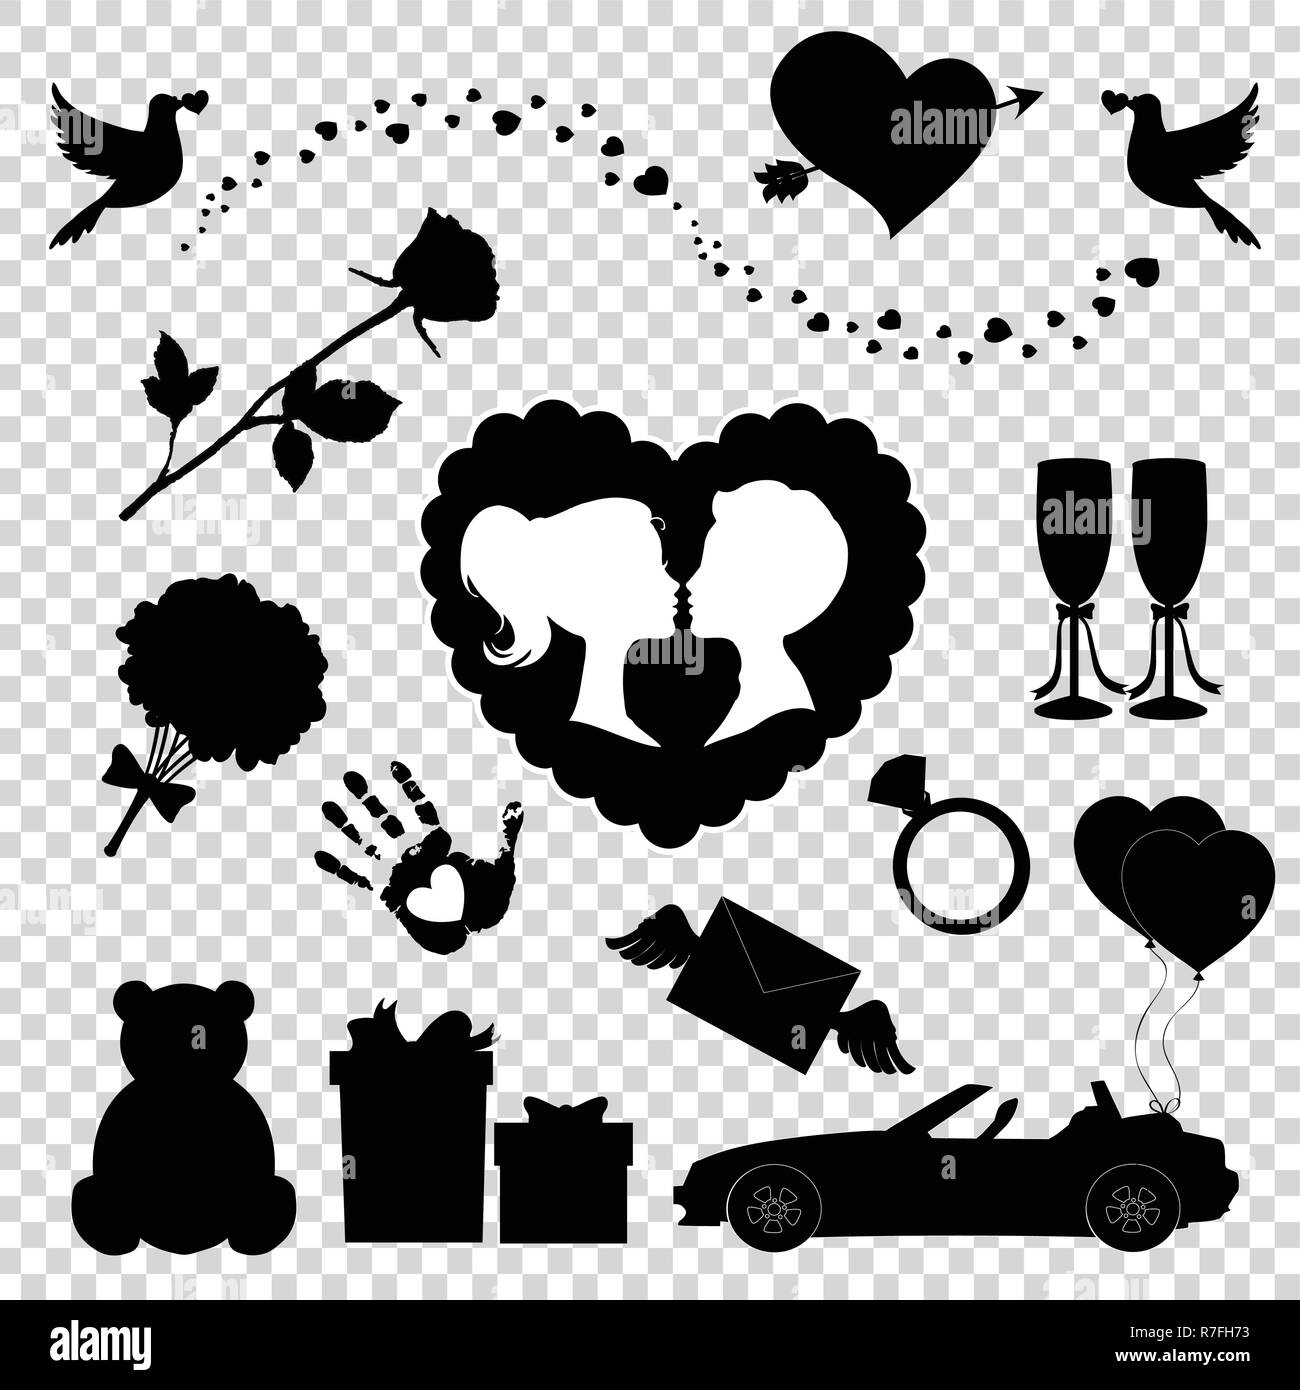 Love Liebe Hochzeit Wedding Silhouette Brautpaar Schwar: Wedding Car With Just Married Sign Stockfotos & Wedding